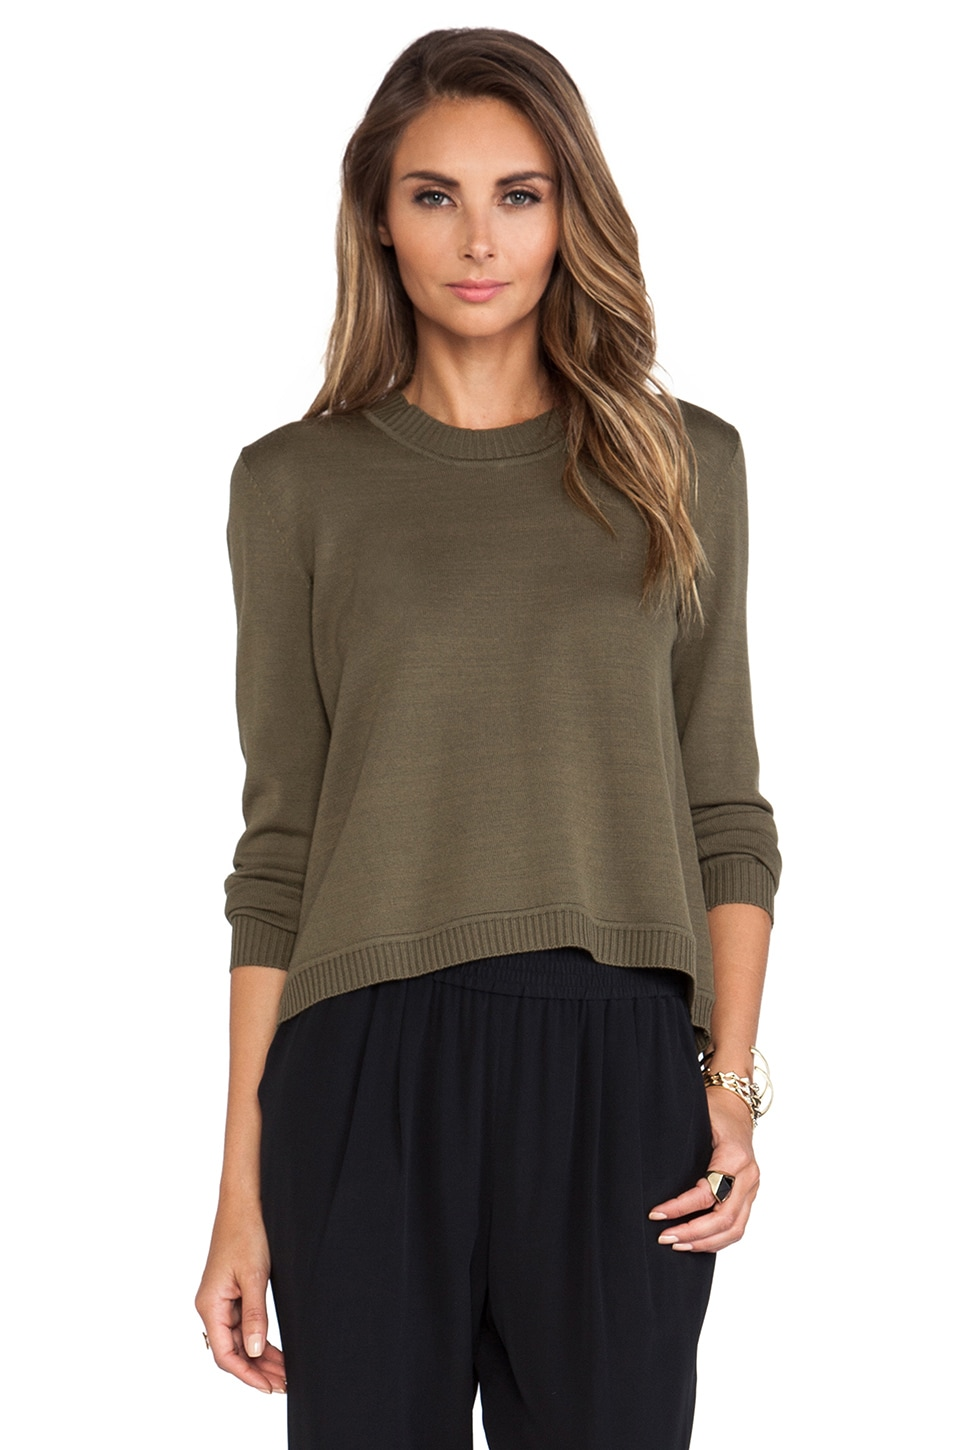 Jenni Kayne Open Back Sweater in Military